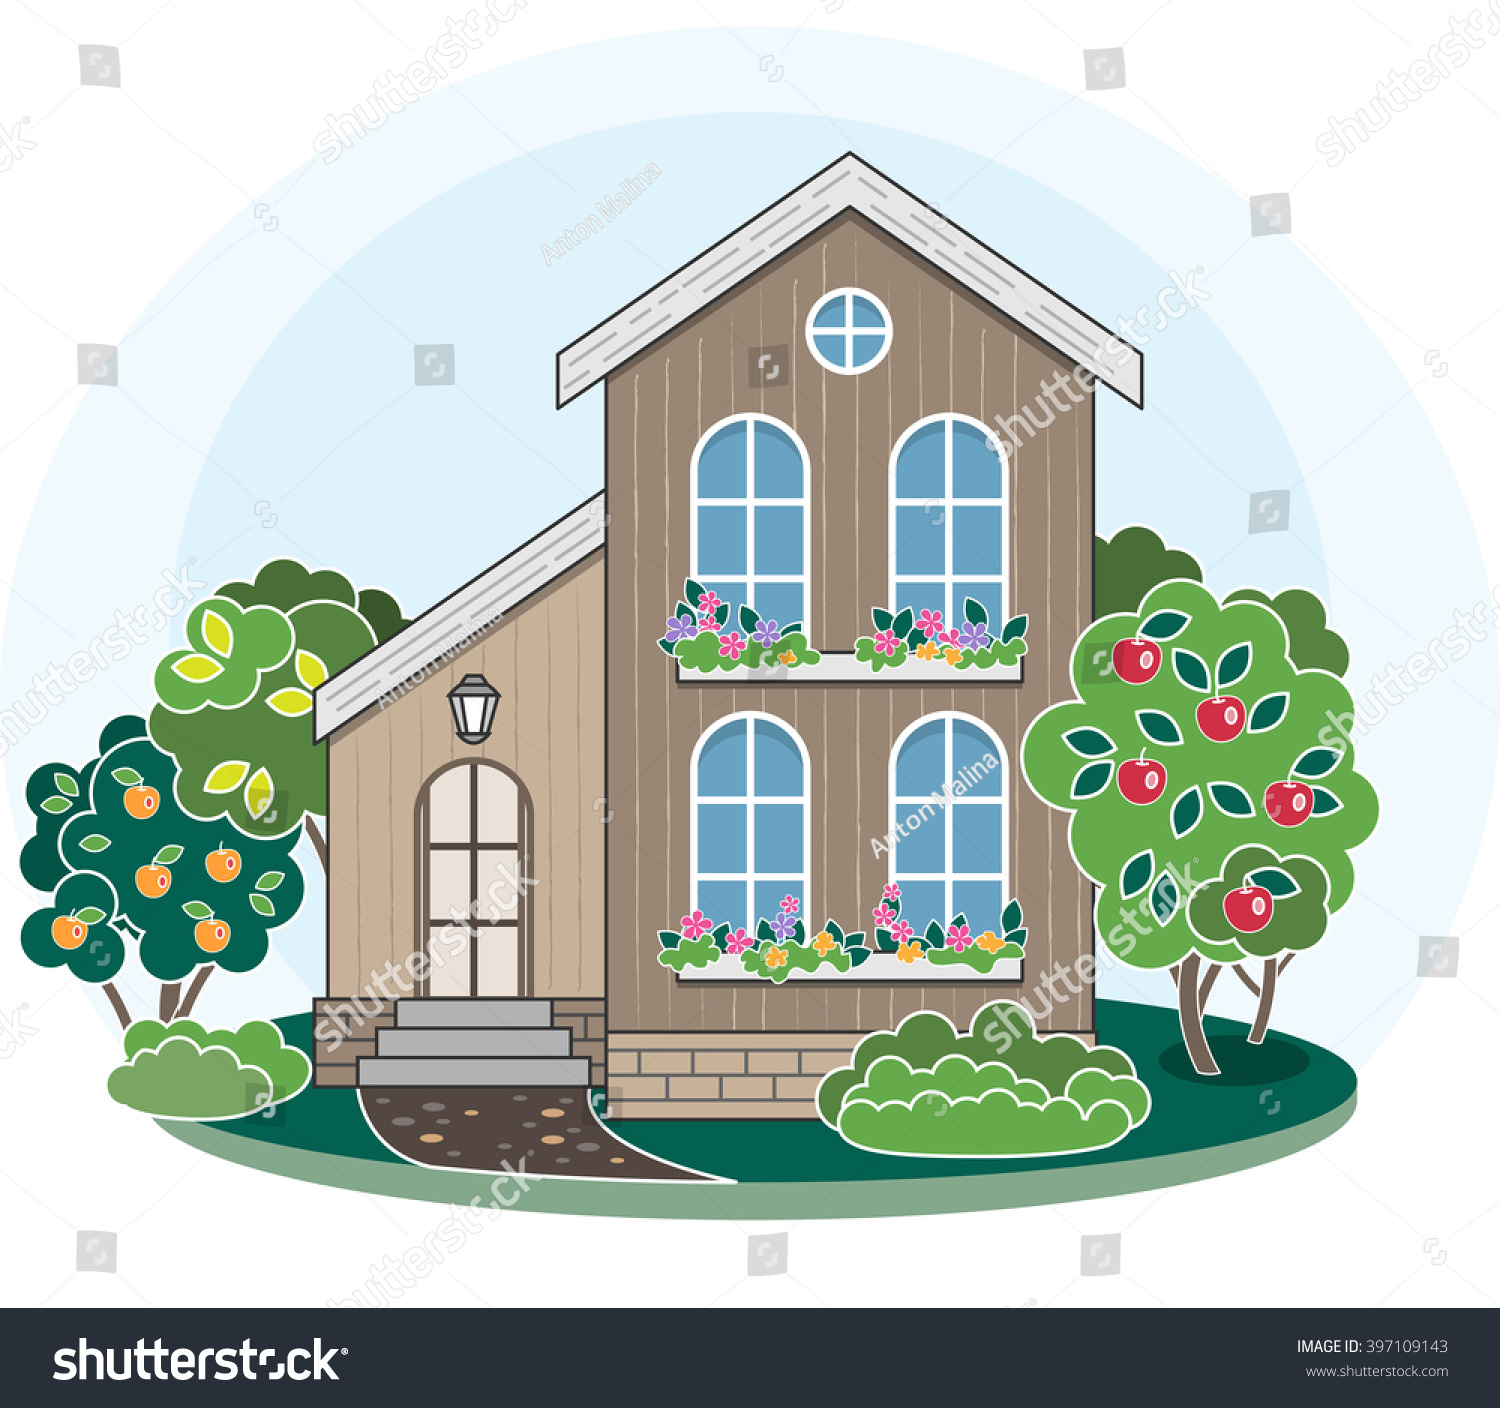 Groovy Vector De Stock Libre De Regalias Sobre Cartoon House Interior Design Ideas Gresisoteloinfo